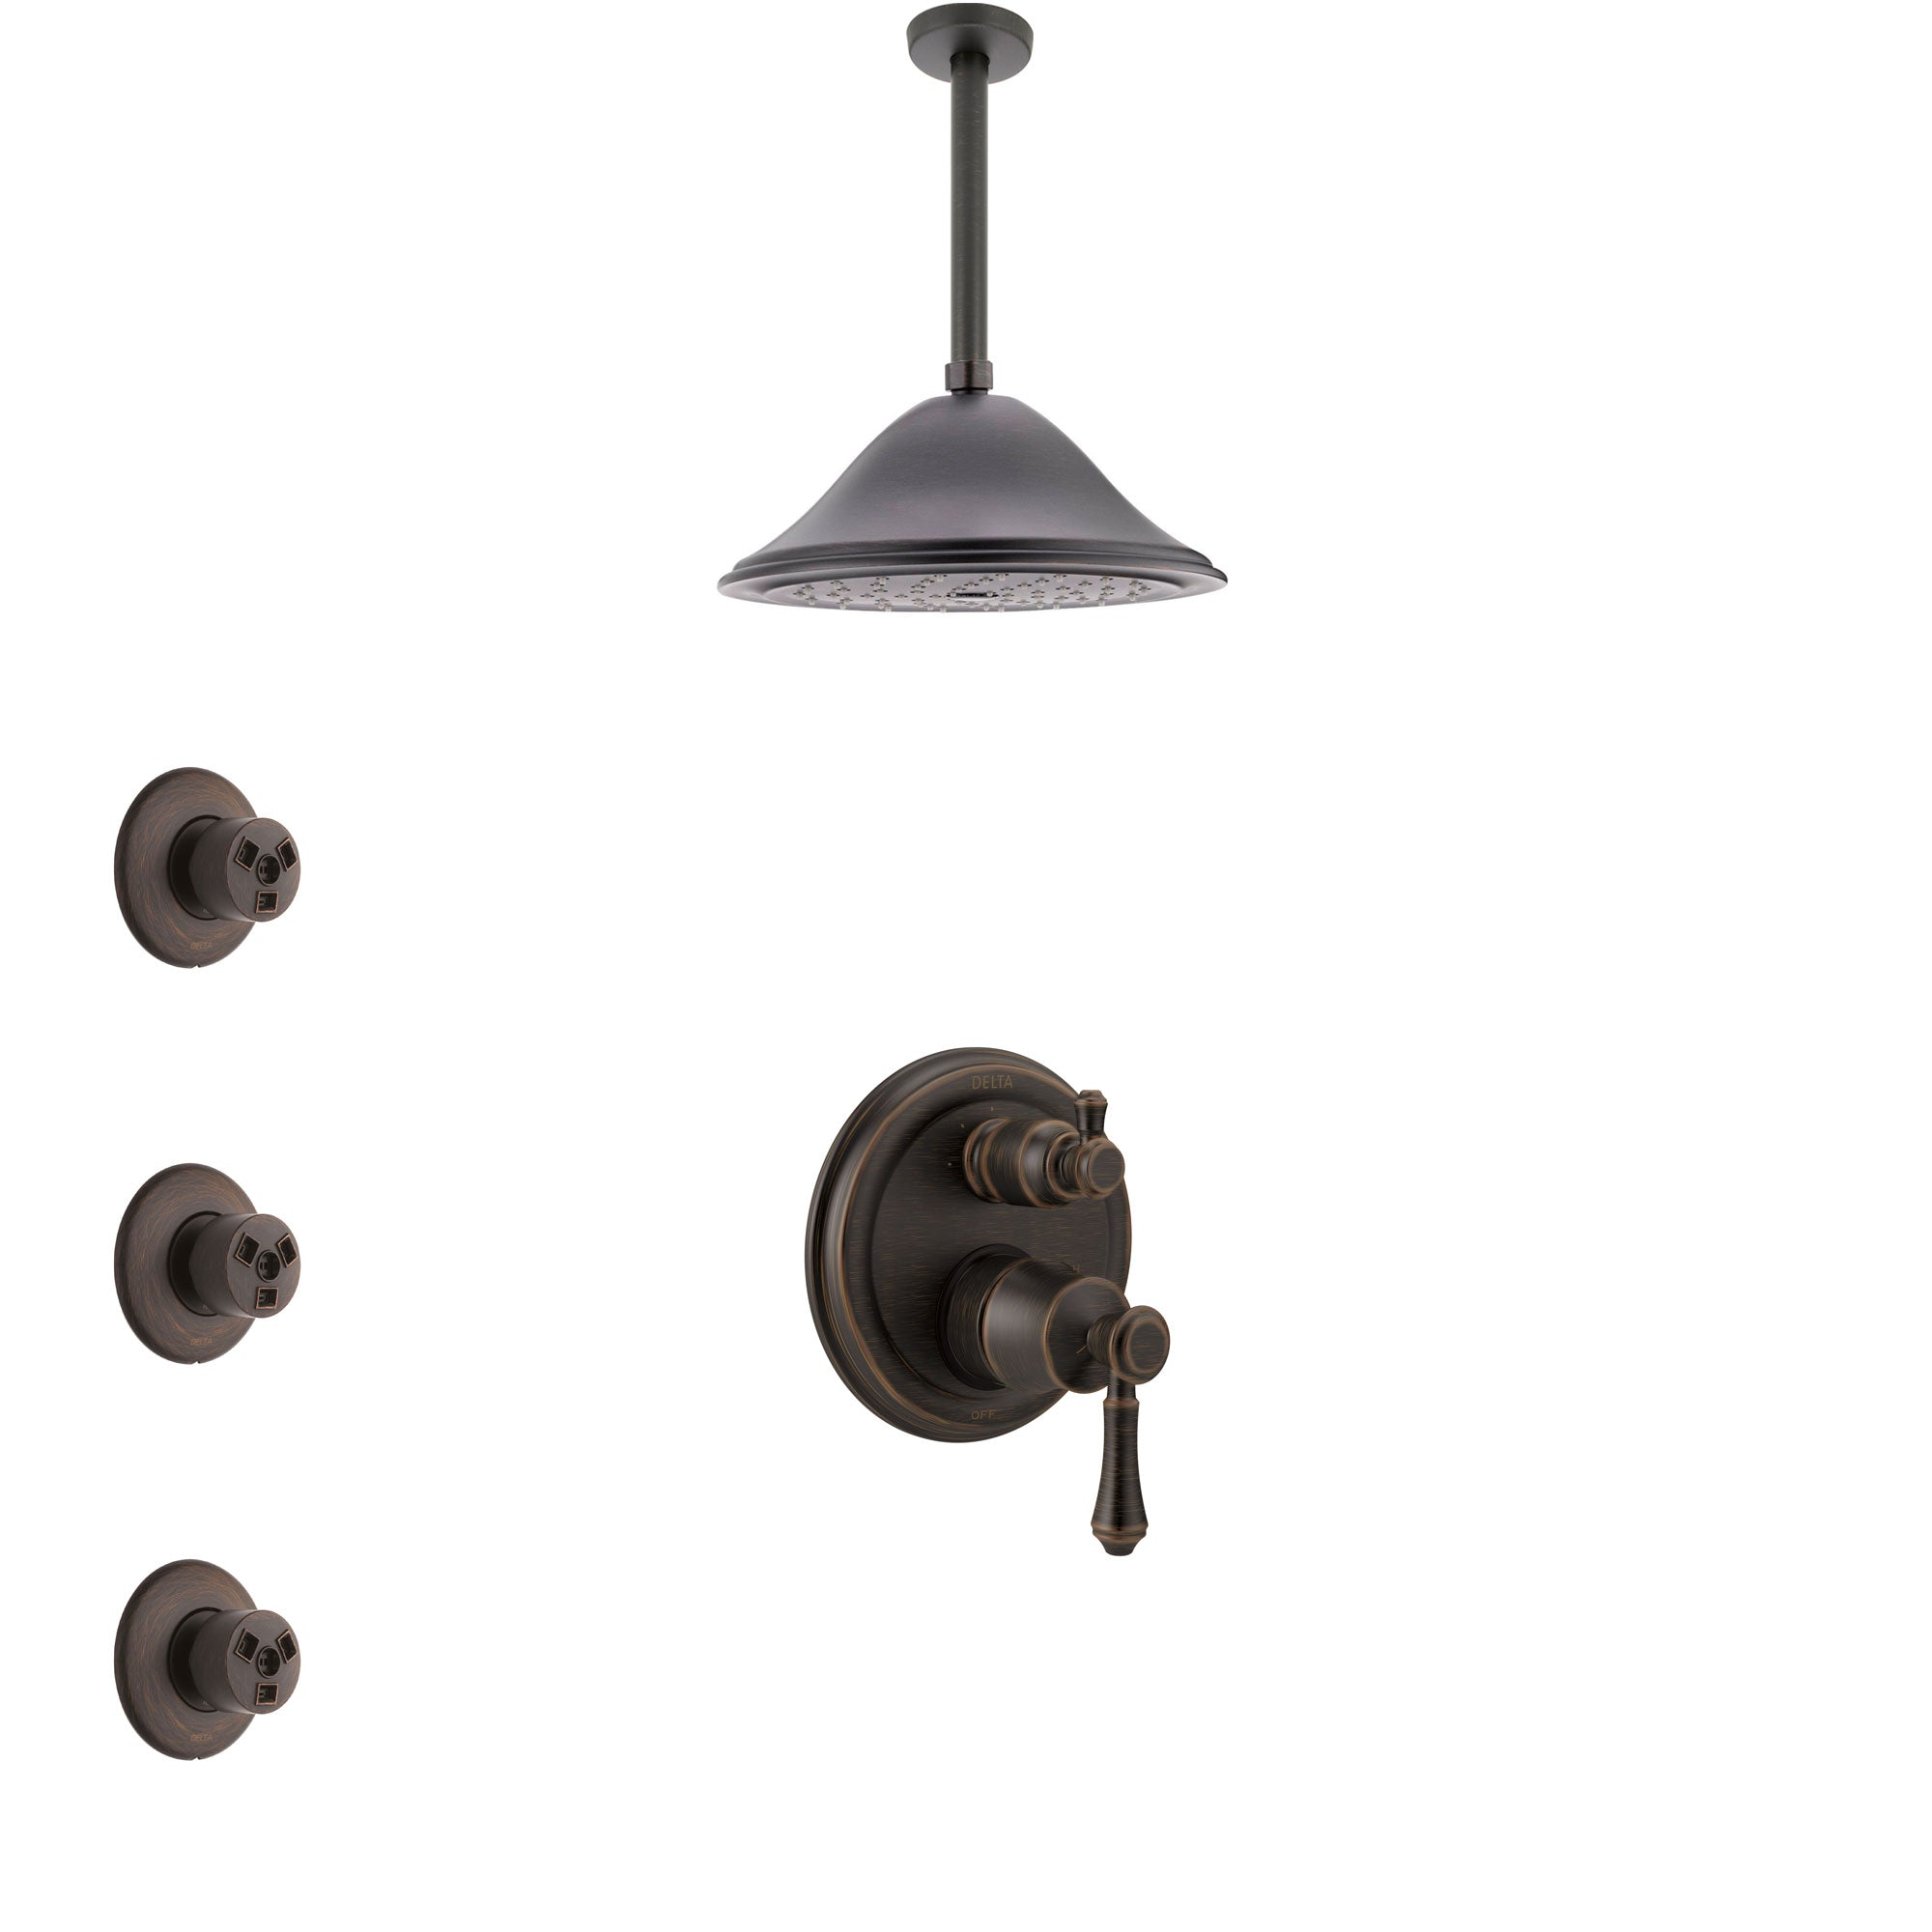 Delta Cassidy Venetian Bronze Shower System with Control Handle, Integrated 3-Setting Diverter, Ceiling Mount Showerhead, and 3 Body Sprays SS24897RB9